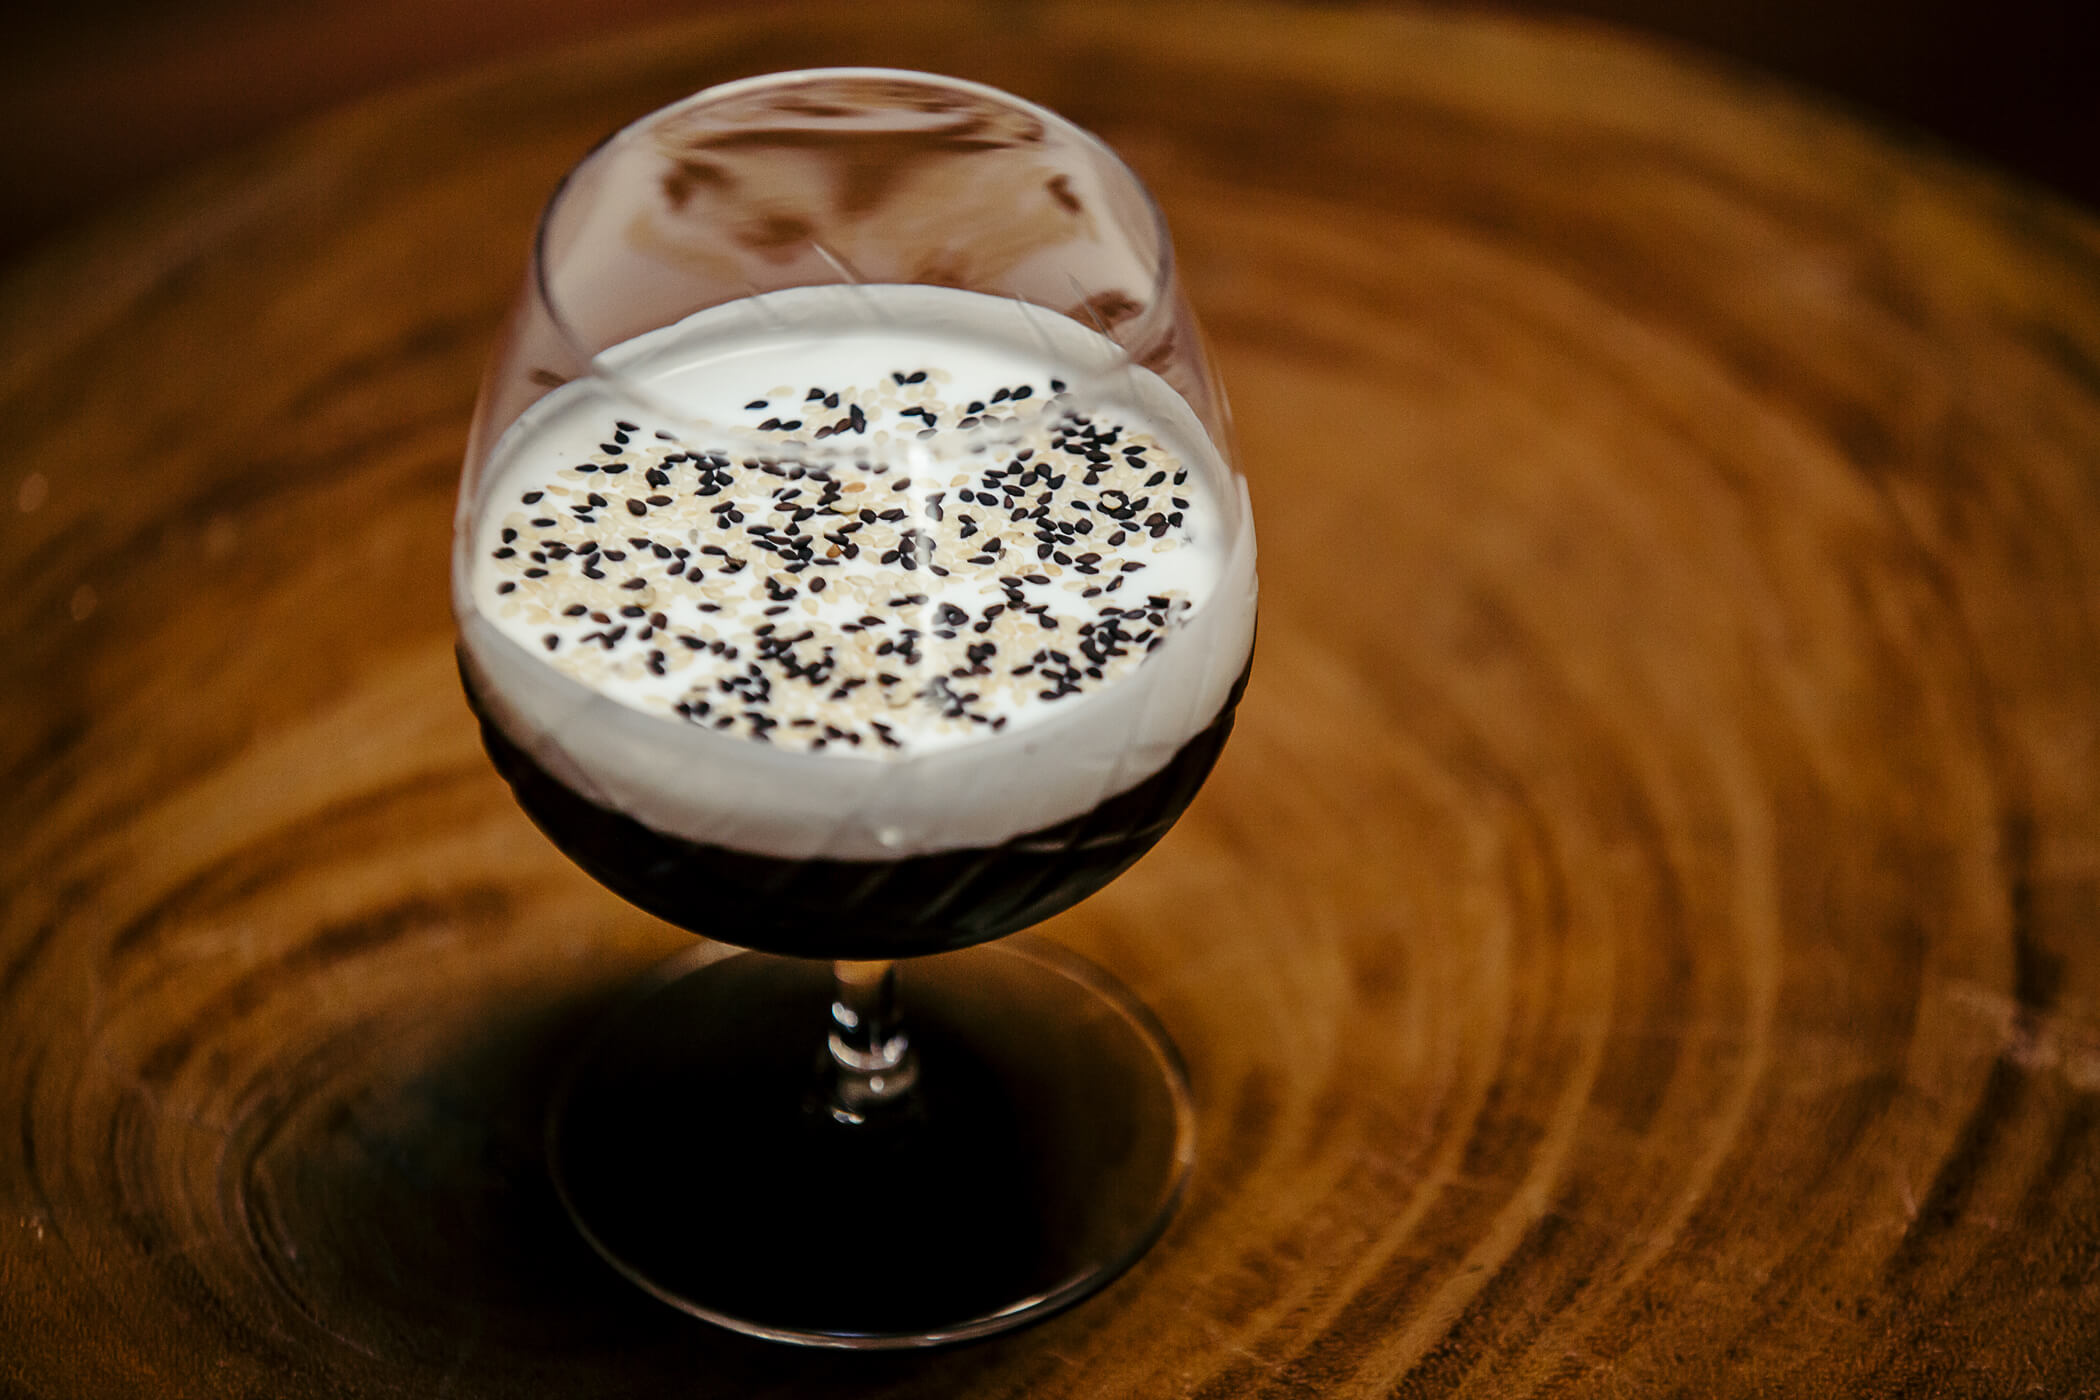 Turn Down for Nut cocktail at Pacific Cocktail Haven (PCH) - Sesame cocktail recipes